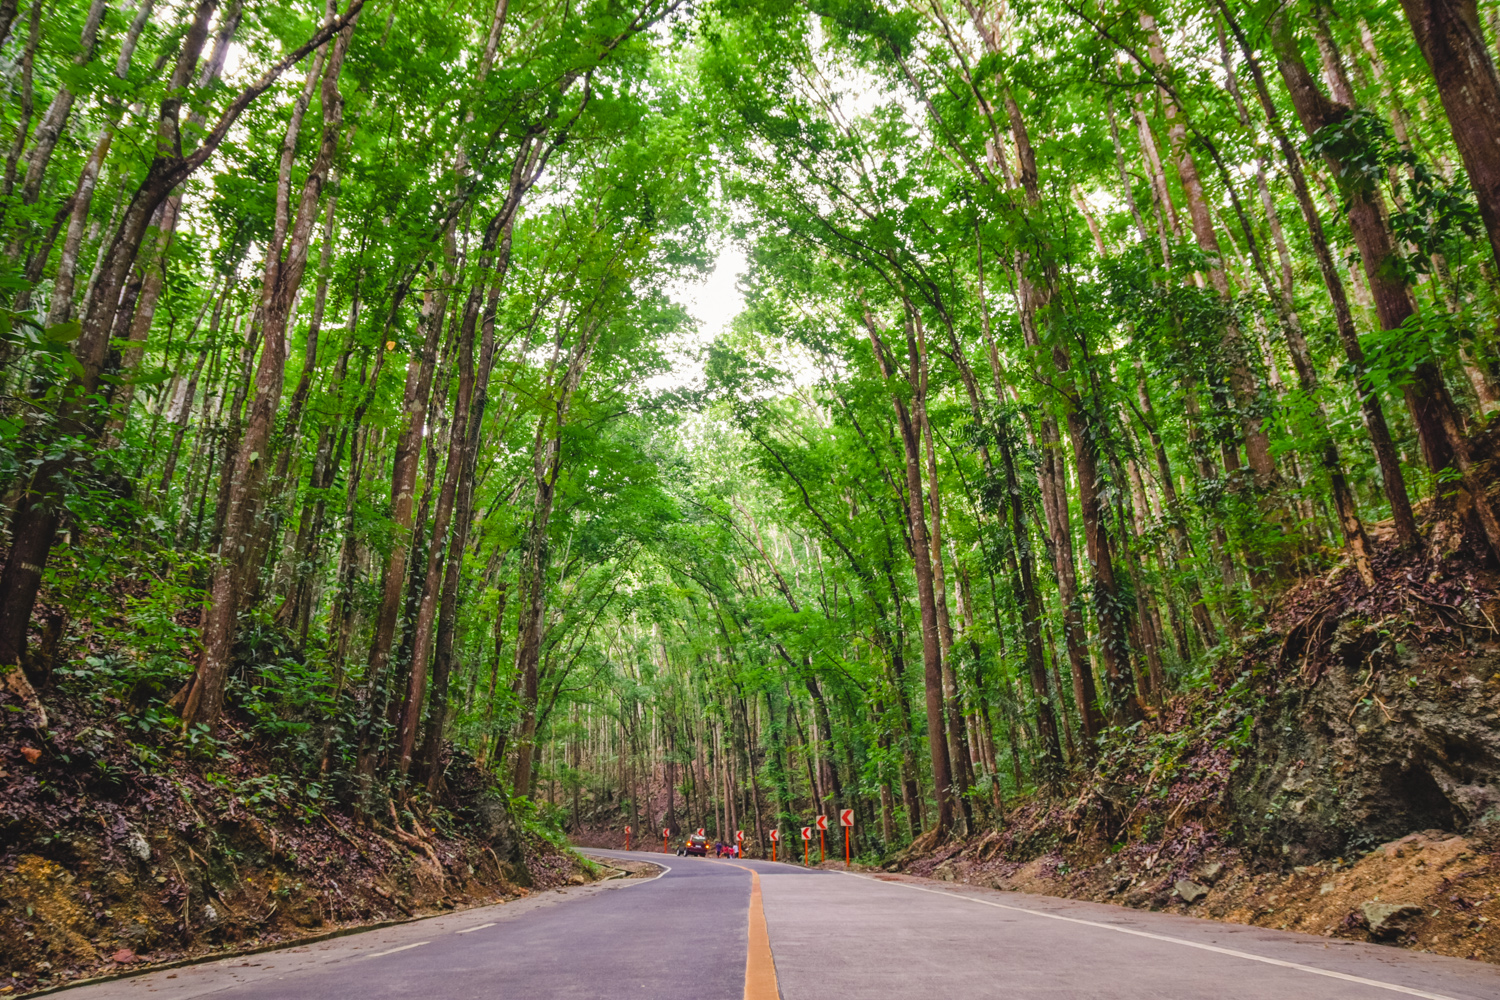 Tour Of Cebu And Bohol In Philippines